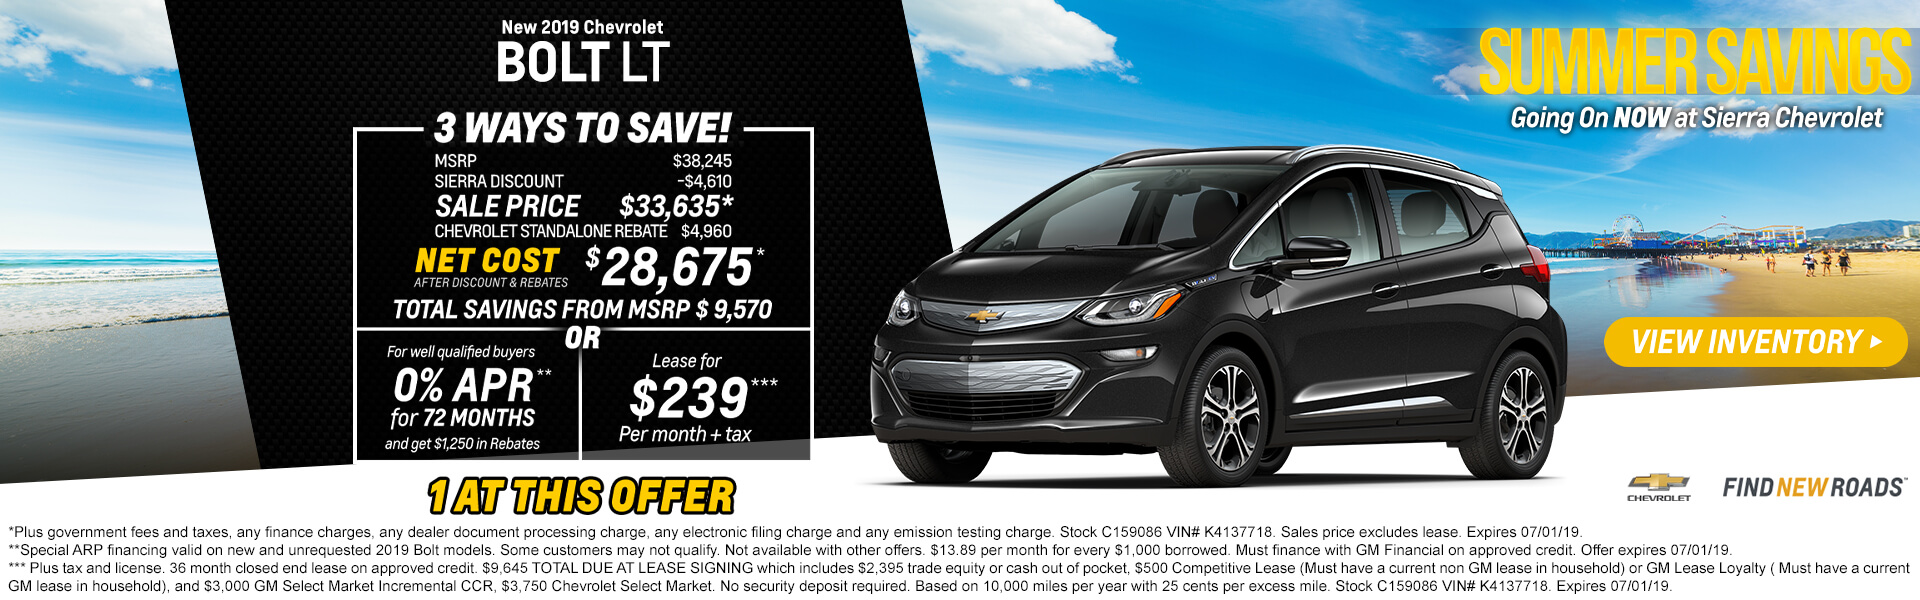 "2019 Chevrolet Bolt LT  MSRP $38,245 Sierra Discount -$4,610 SALE PRICE $33,635* Chevrolet Standalone Rebate $4,960  Net Cost After Discount & Rebates $28,675*  Total Savings from MSPR $ 9,570  1 AT THIS OFFER     ""OR""    For well qualified buyers   Get 0% APR** Financing for 72 months   and get $1,250 in Rebates     ""OR""   Lease  Lease for $239***   Per month + tax    Chevrolet Select Market CCR $3000  Chevrolet Select Market $3750 GM or non GM Lease in household $500         * Plus government fees and taxes, any finance charges, any dealer document processing charge, any electronic filing charge and any emission testing charge. Stock C159086 VIN# K4137718. Sales price excludes lease. Expires 07/01/19.   **Special ARP financing valid on new and unrequested 2019 Bolt models. Some customers may not qualify. Not available with other offers. $13.89 per month for every $1,000 borrowed. Must finance with GM Financial on approved credit. Offer expires 07/01/19.      *** Plus tax and license. 36 month closed end lease on approved credit. $9,645 TOTAL DUE AT LEASE SIGNING which includes $2,395 trade equity or cash out of pocket, $500 Competitive Lease (Must have a current non GM lease in household) or GM Lease Loyalty ( Must have a current GM lease in household), and $3,000 GM Select Market Incremental CCR, $3,750 Chevrolet Select Market. No security deposit required. Based on 10,000 miles per year with 25 cents per excess mile. Stock C159086 VIN# K4137718. Expires 07/01/19."